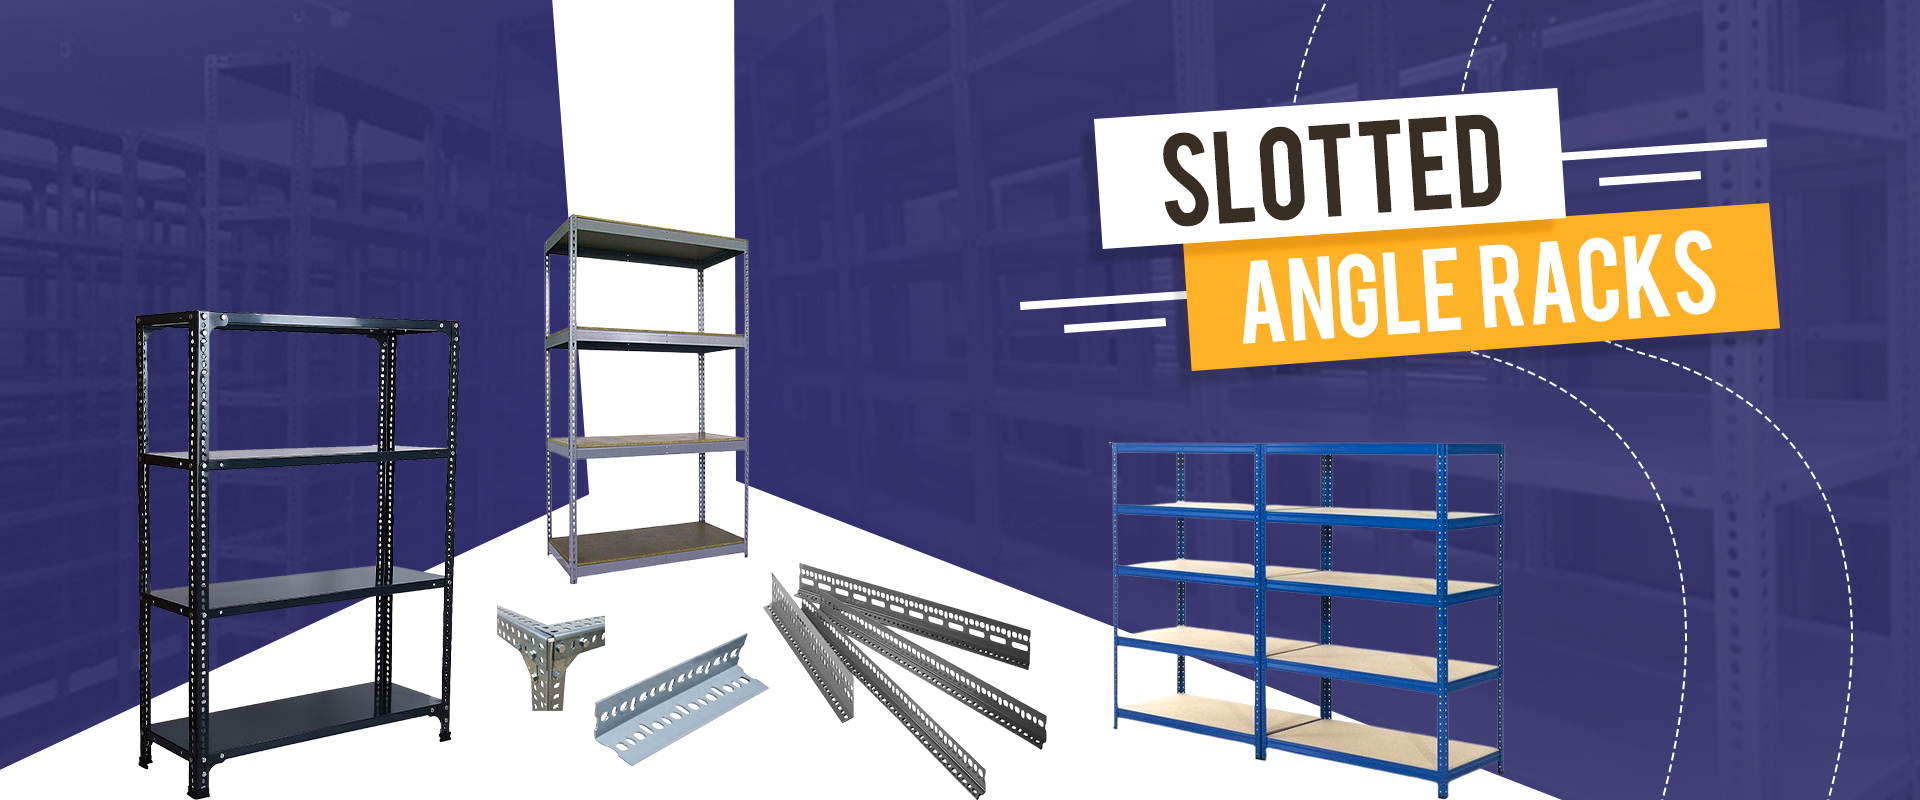 Slotted Angle Racks In Durgapur